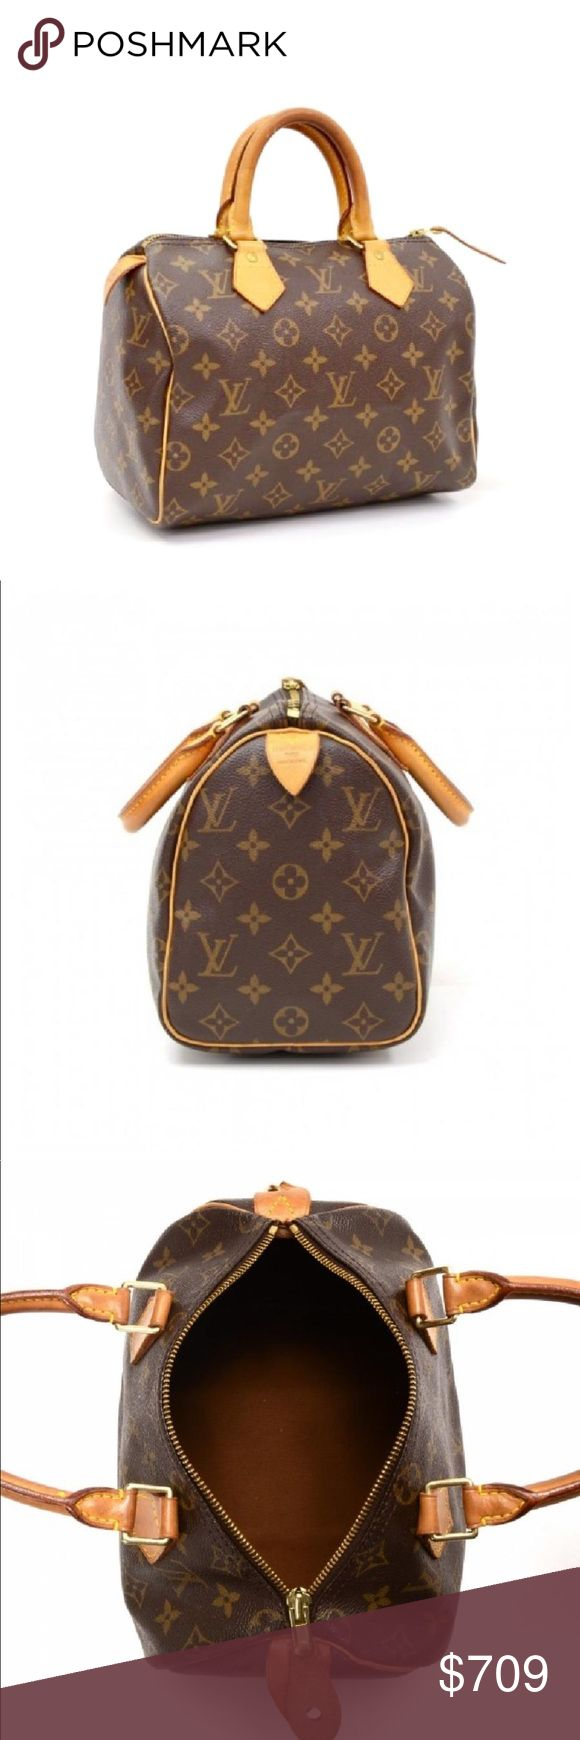 """✅Authentic 💞Louis Vuitton 💞Monogram Speedy 25 Authentic Louis Vuitton """"Speedy 25"""" bag in monogram canvas - An icon of our times, this city bag is ideal for the fast pace of modern life. It is a classic shape and style that can be so easy to match to outfits, extremely durable, making it the perfect bag for travel and everyday wear. Wherever you need to go, the Speedy 25 makes zipping around town a pleasure. It comes as a complete set accompanied by LV dust bag, retaining lock and key…"""